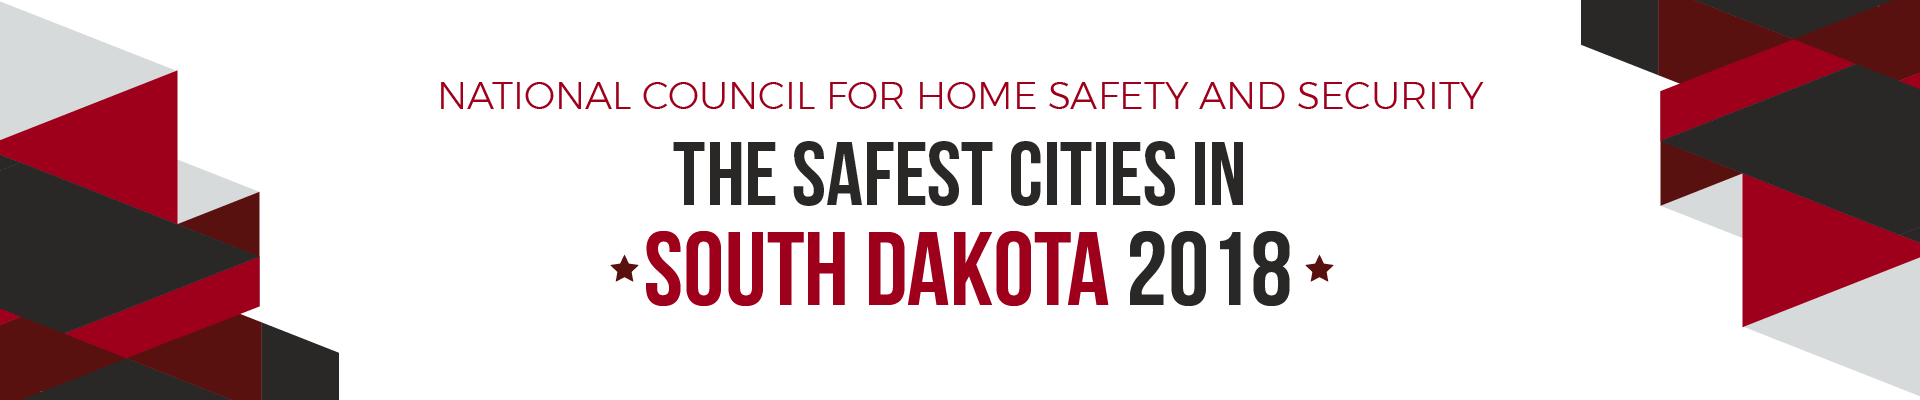 south dakota safe cities 2018